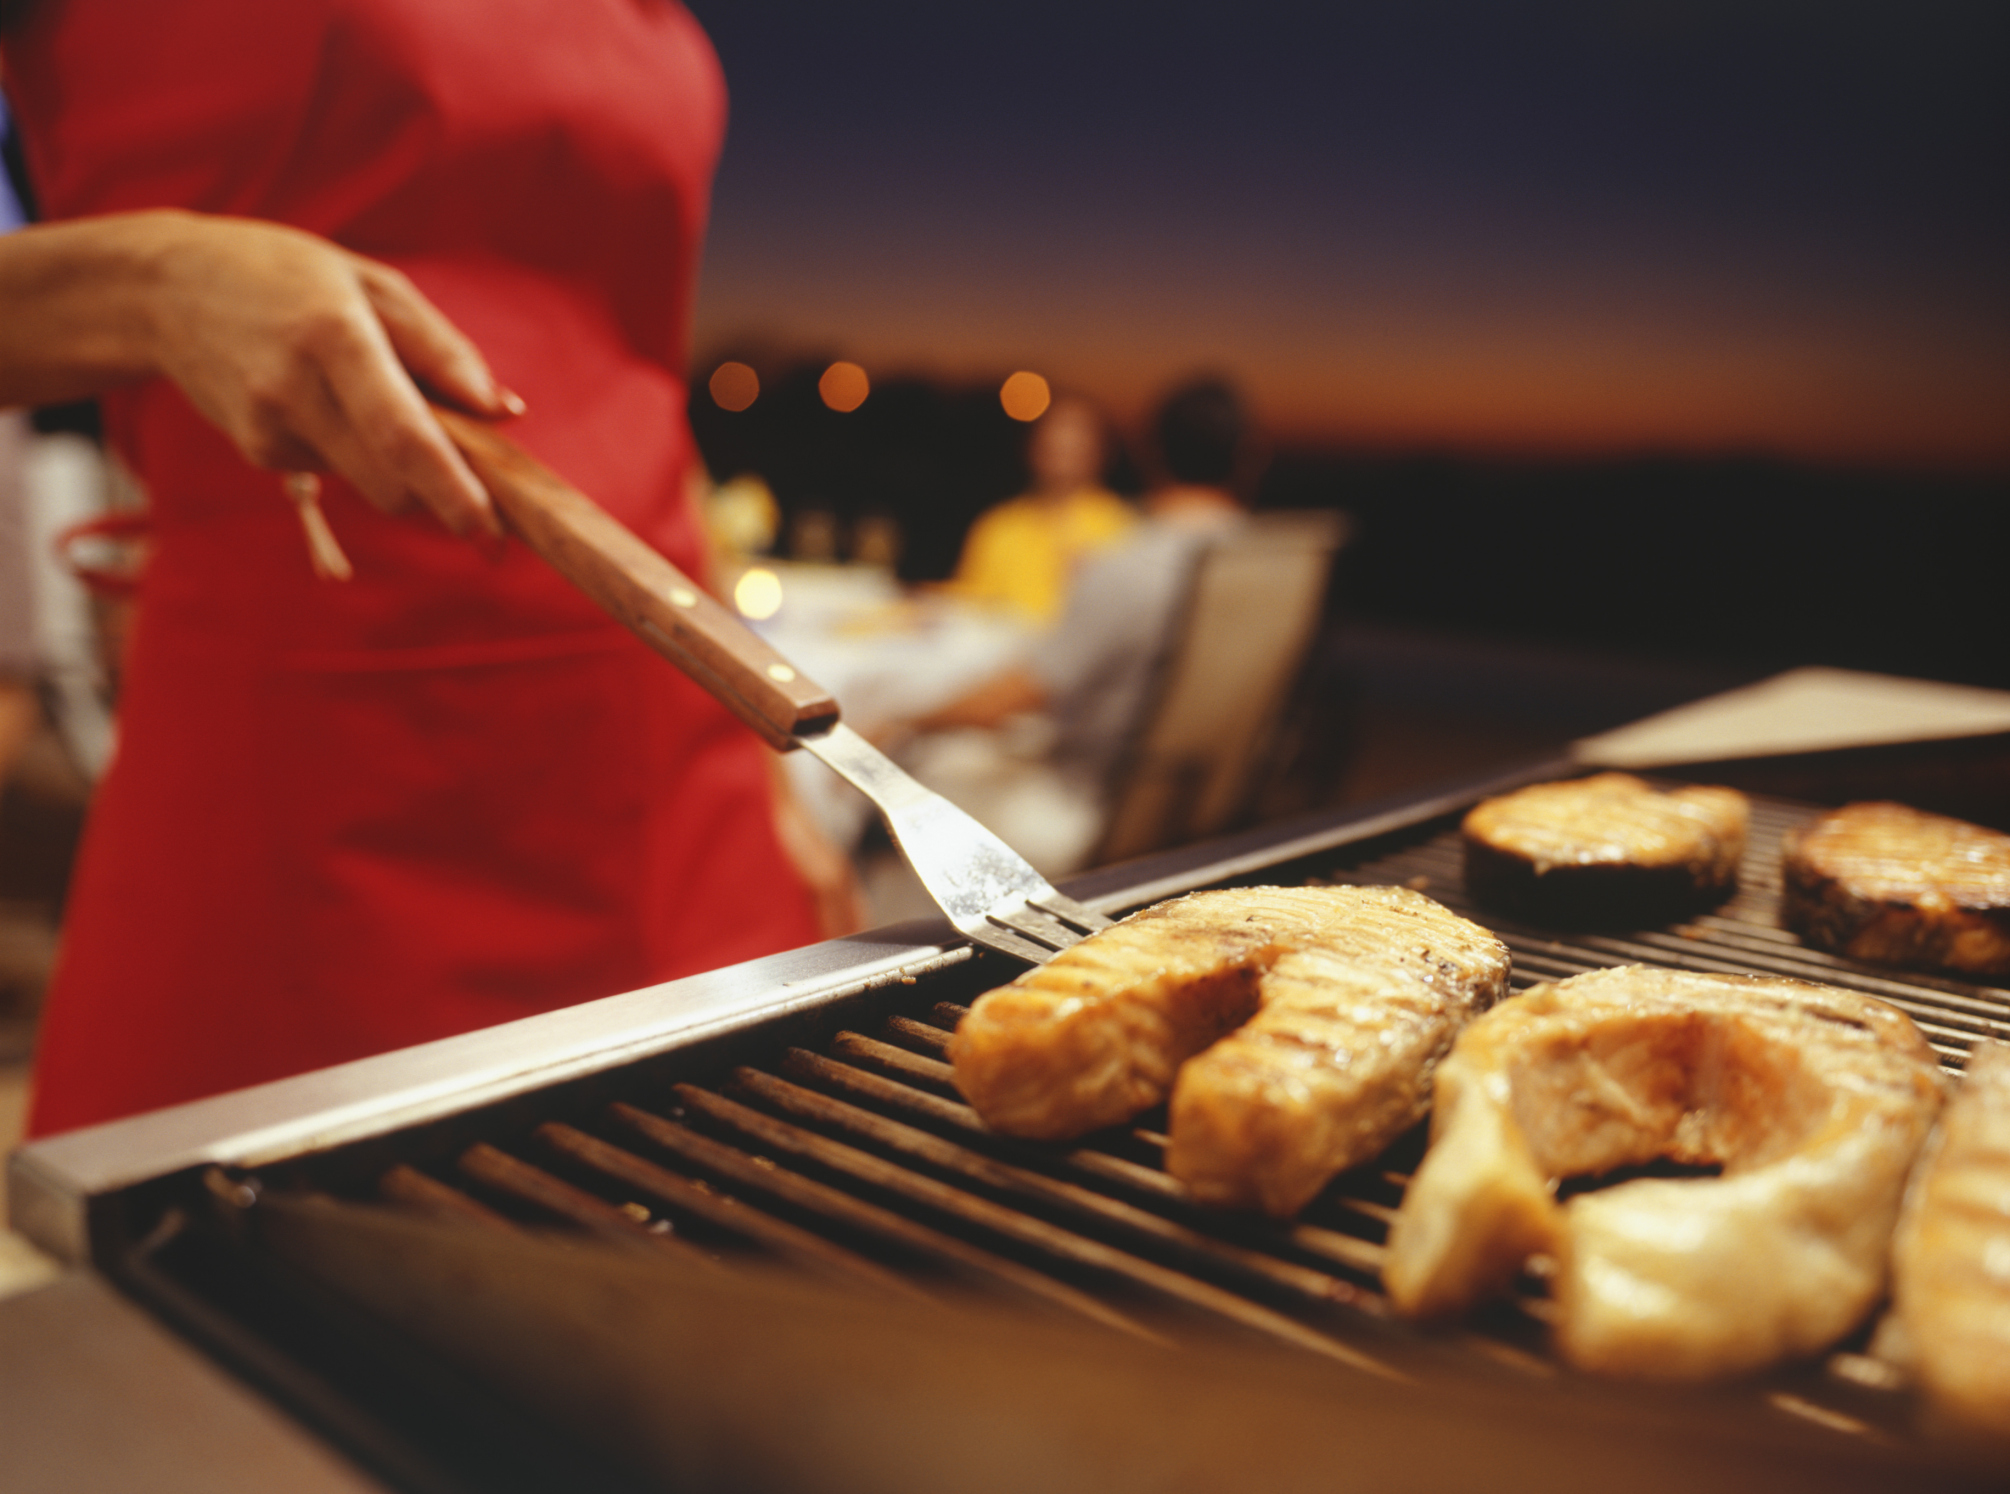 How to Cook Frozen Fish on a Grill | LIVESTRONG.COM